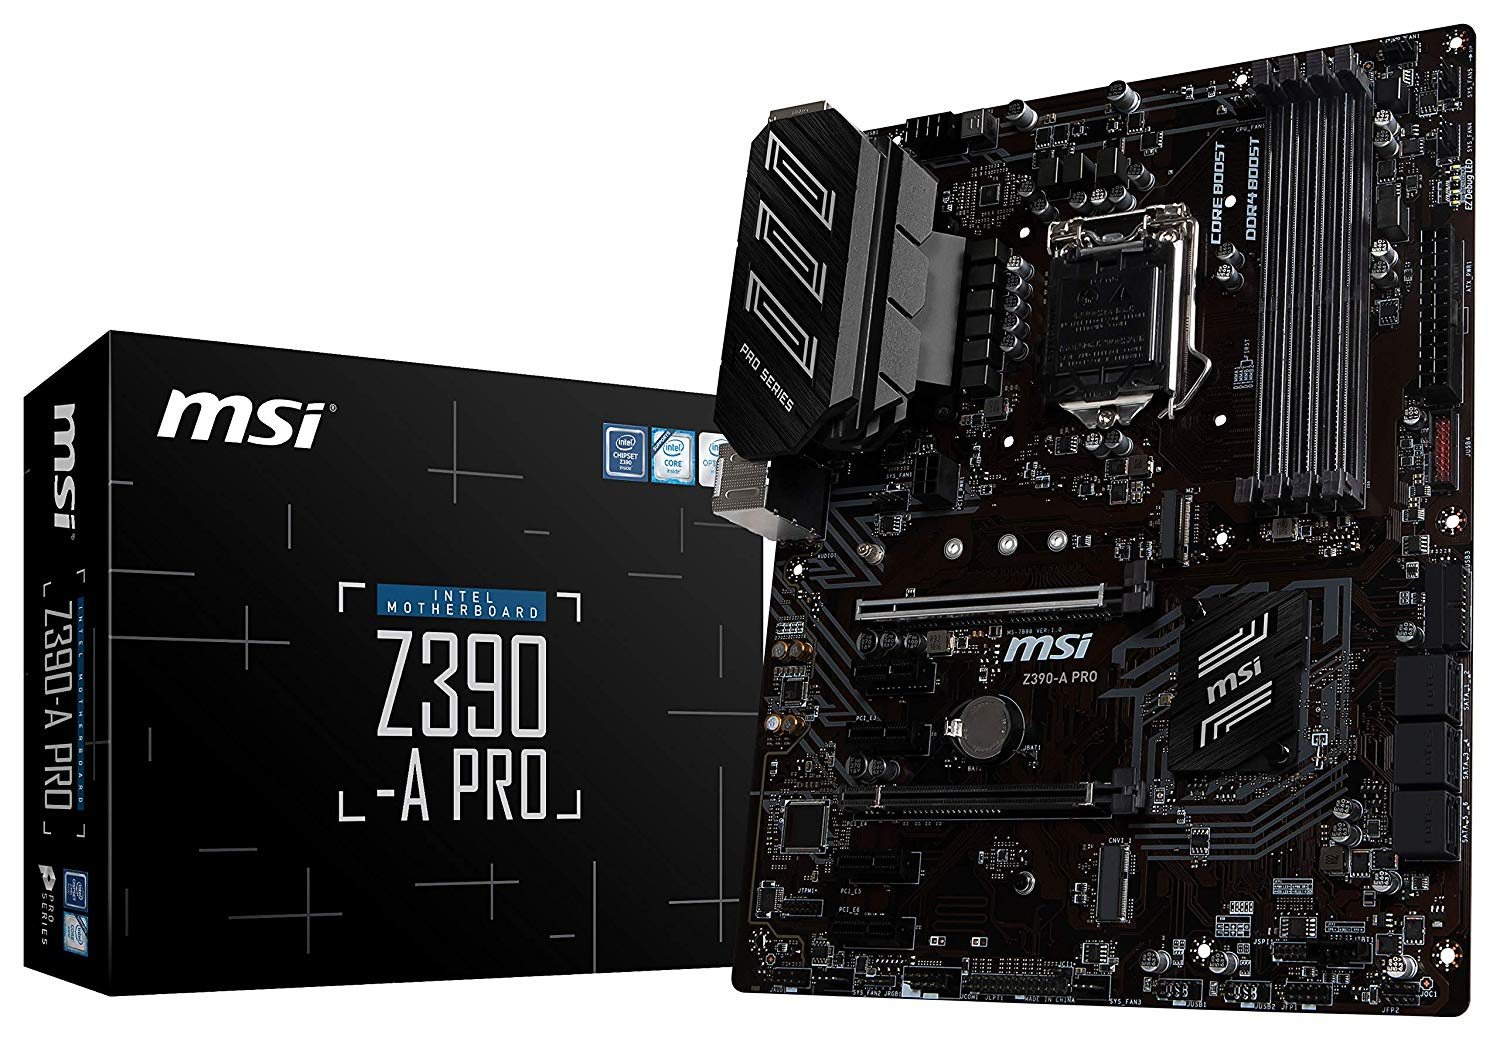 3 Motherboard - MSI Z390-A PRO LGA1151  - Best $1500 PC Build 2019